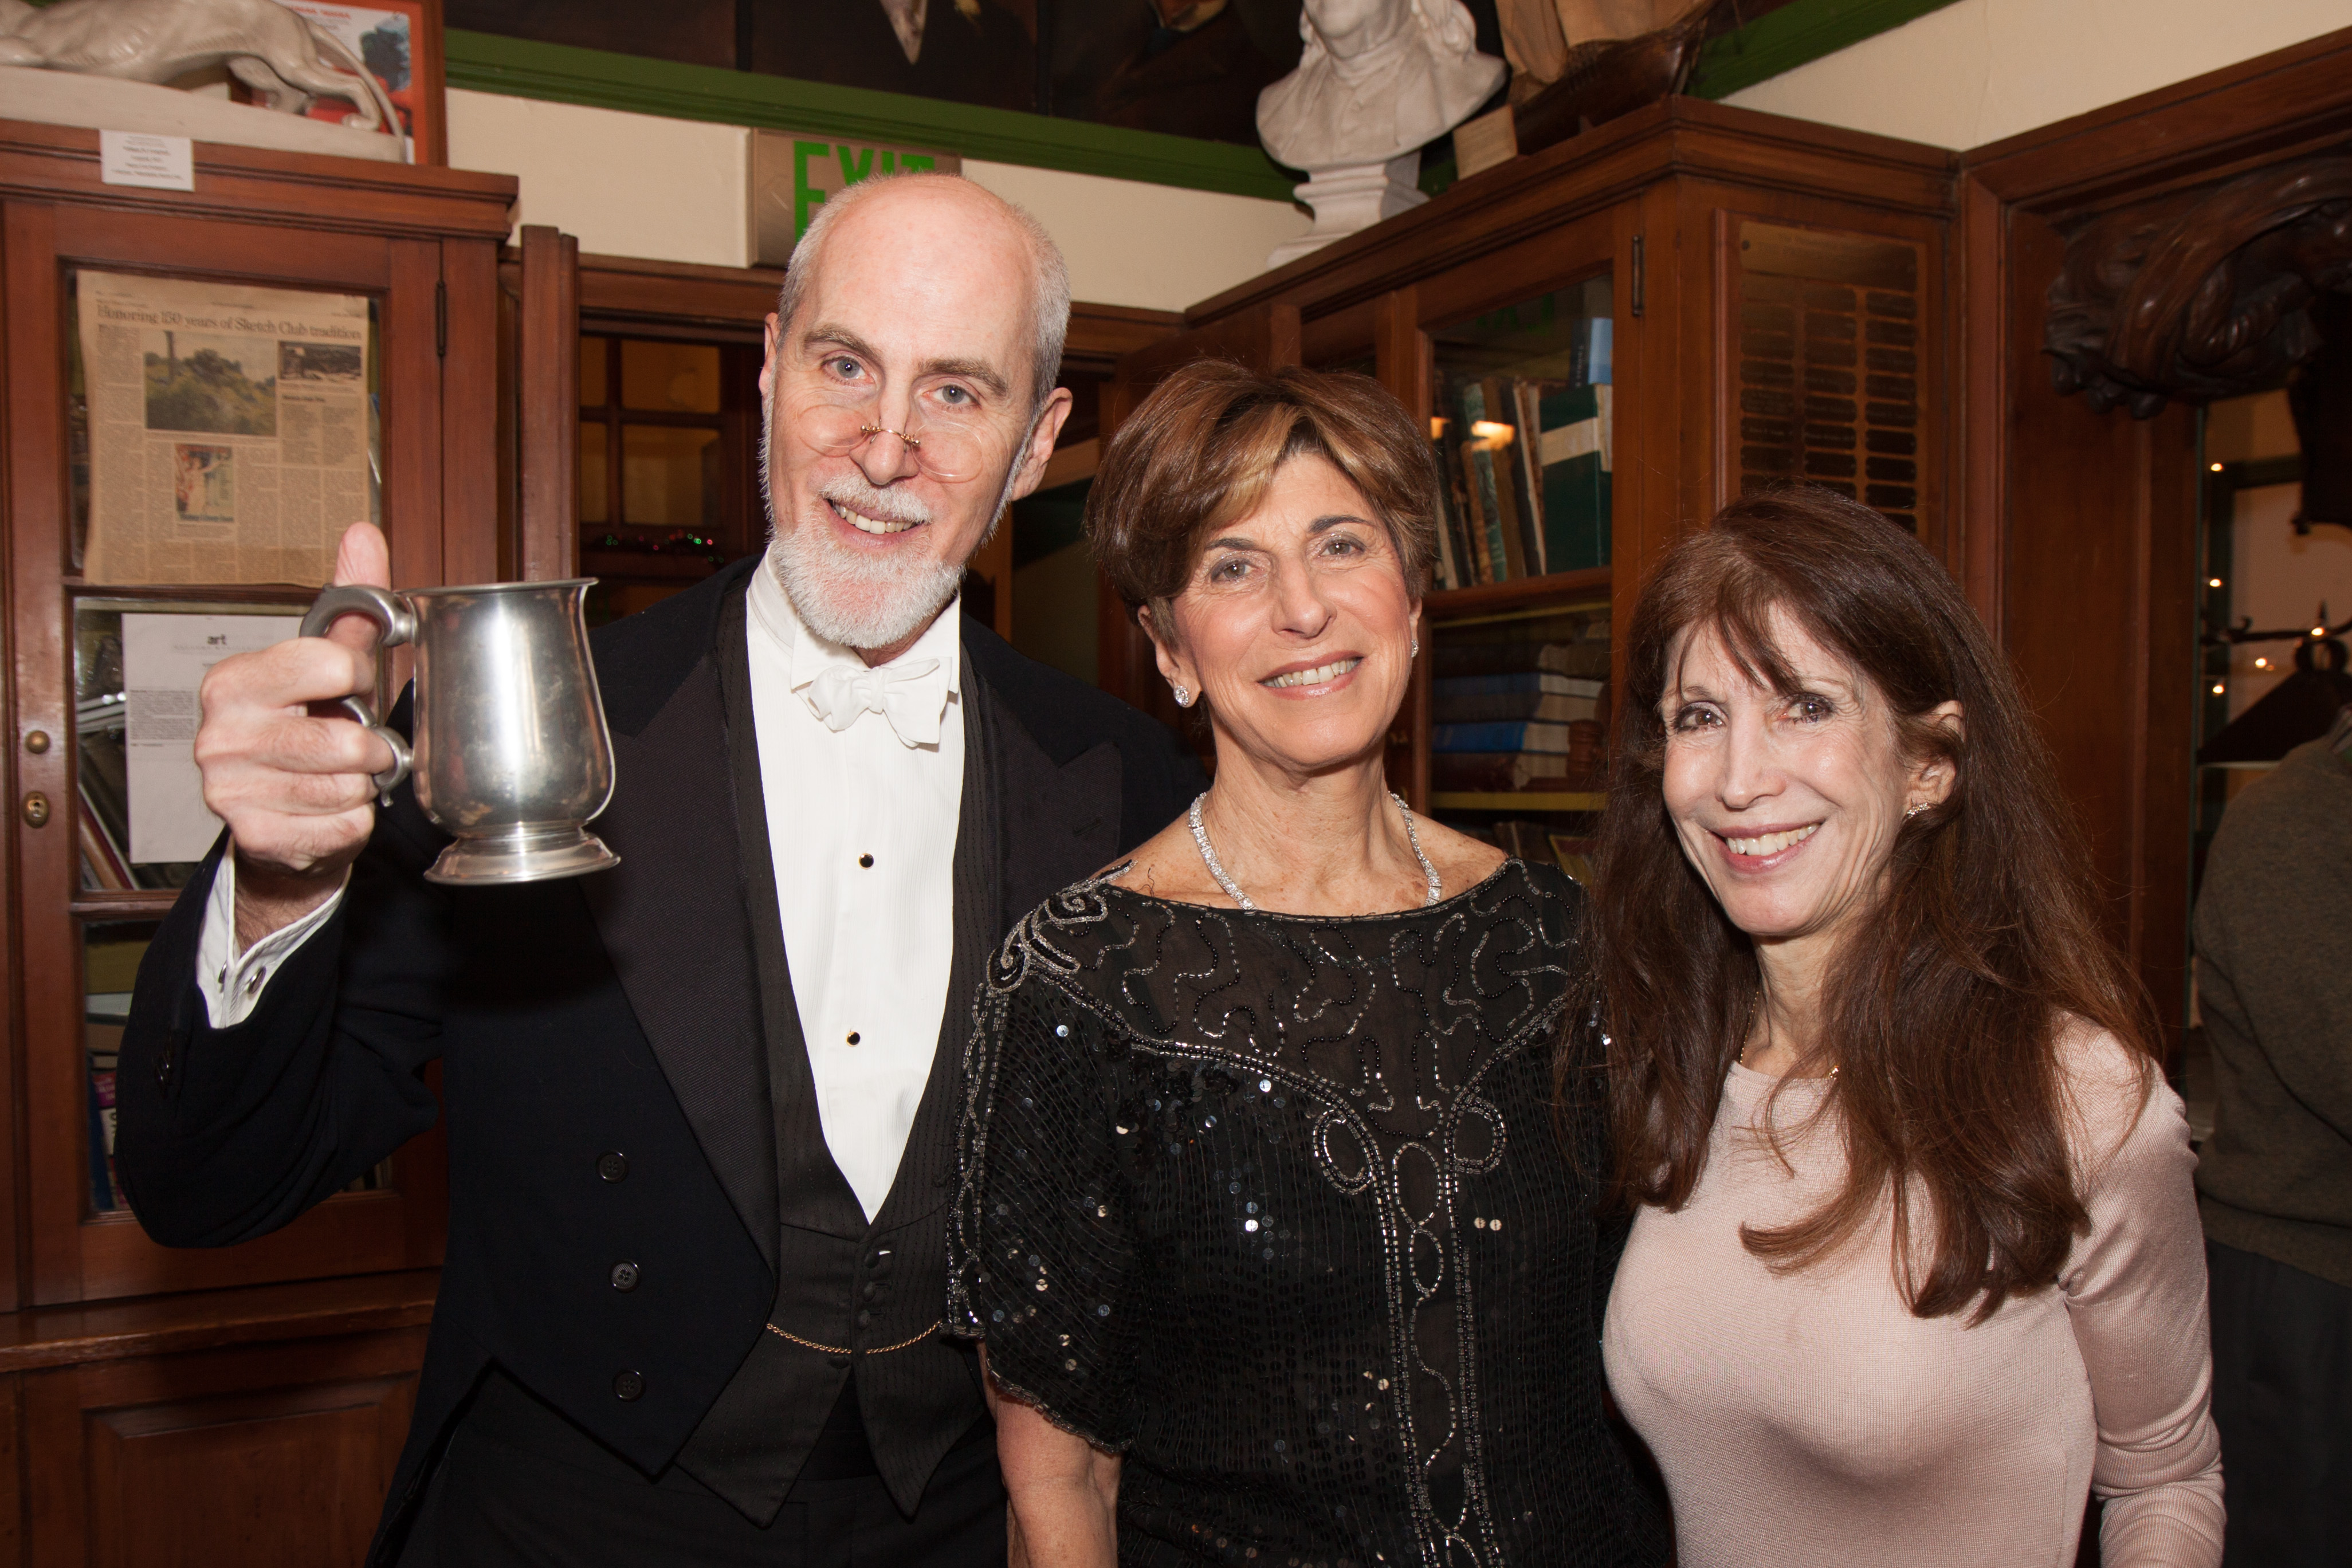 psc-holiday-party-2013-3454